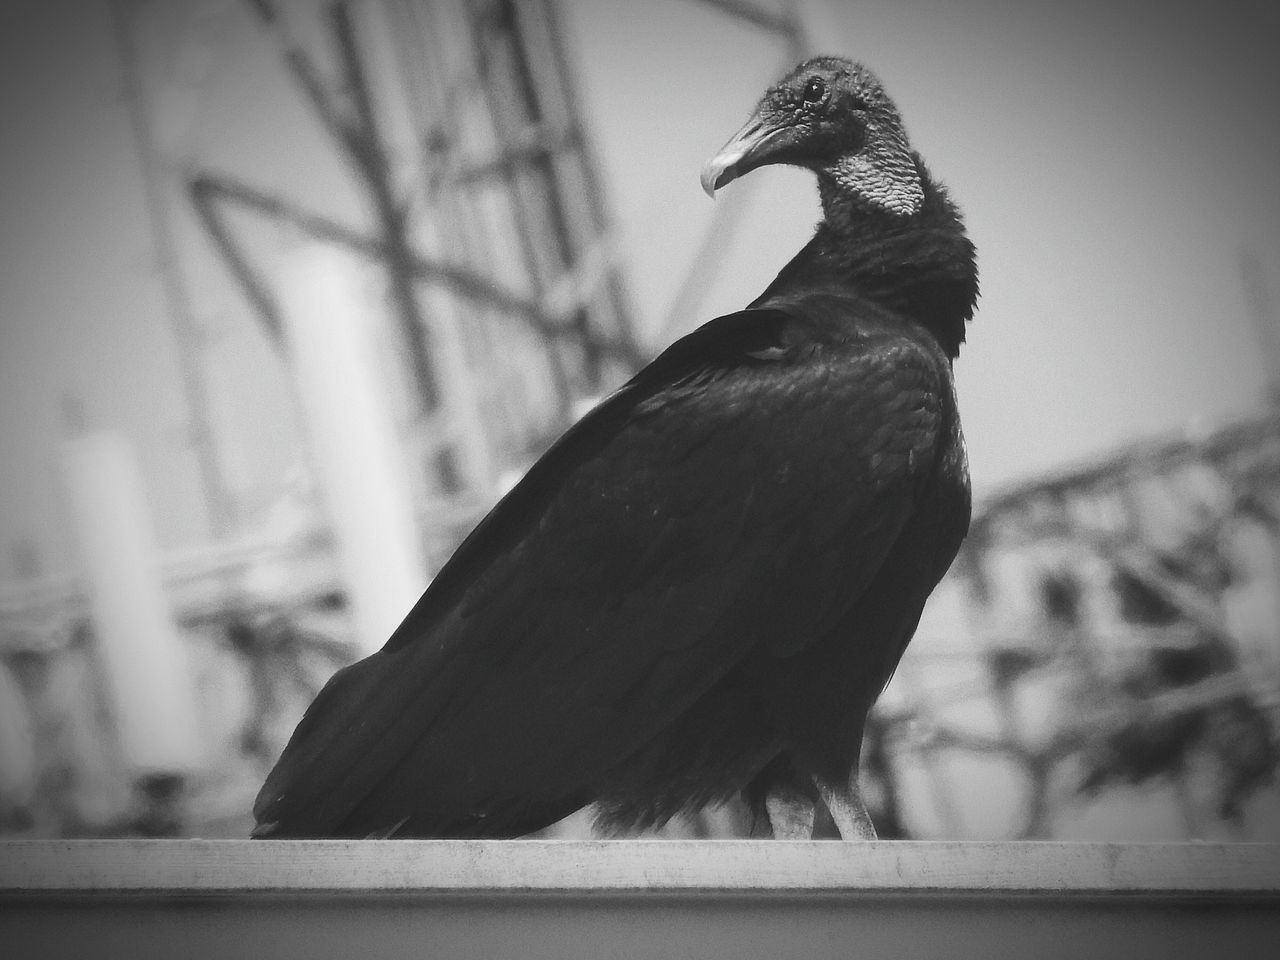 bird, one animal, animal themes, animals in the wild, perching, animal wildlife, focus on foreground, no people, raven - bird, crow, outdoors, close-up, beak, day, nature, sky